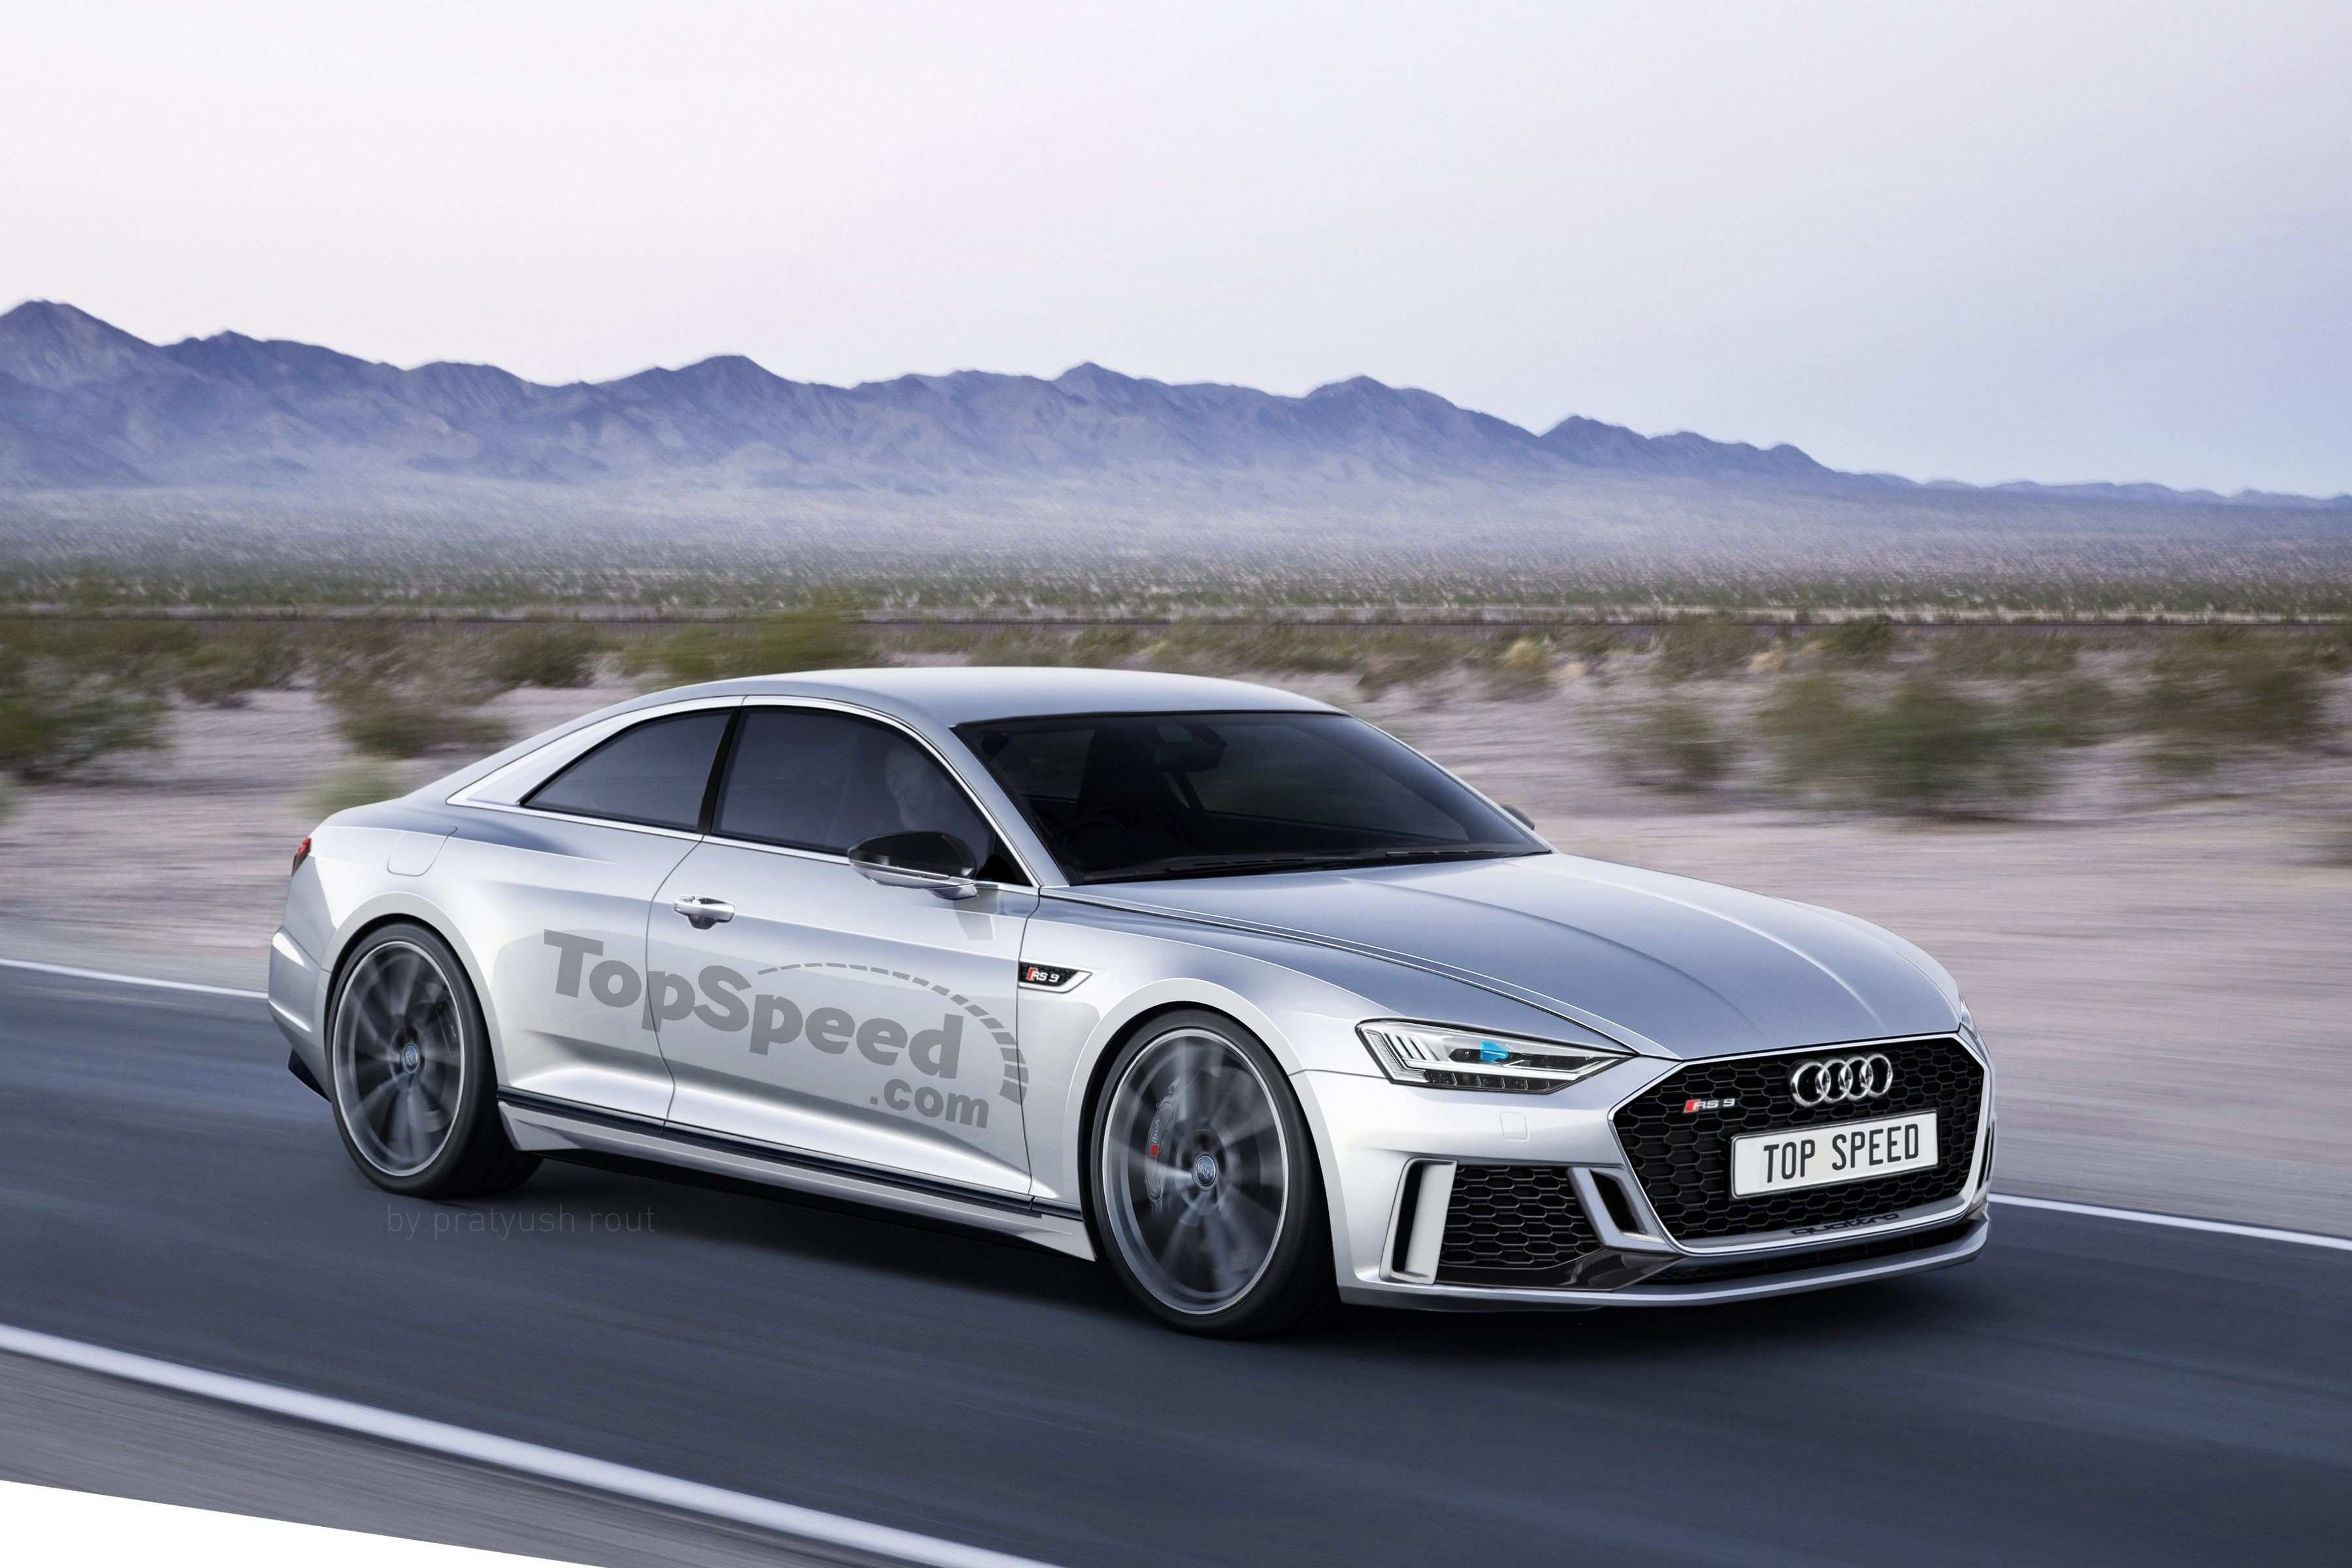 89 New New 2019 Audi Vehicles Redesign And Price Speed Test for New 2019 Audi Vehicles Redesign And Price